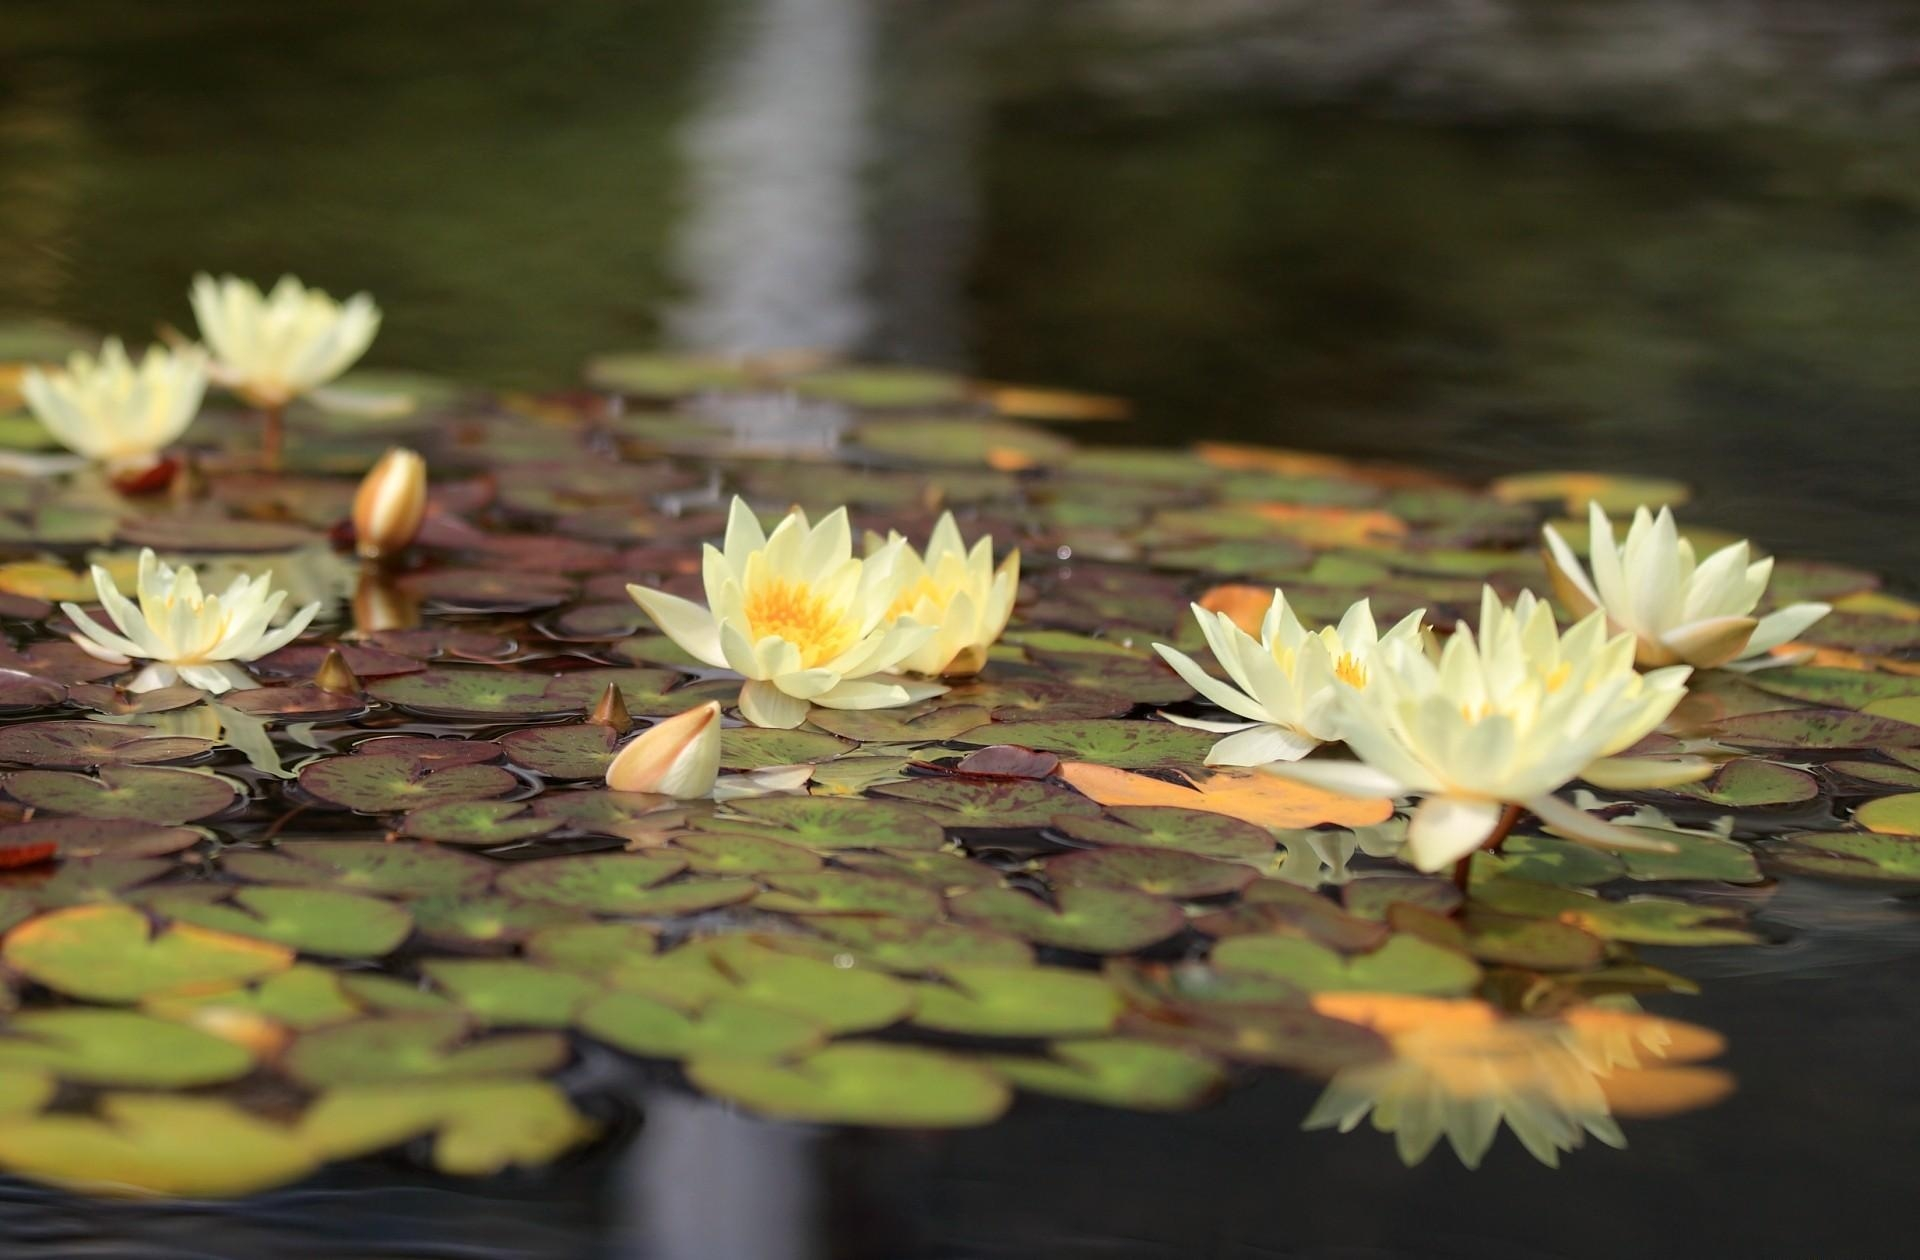 111077 download wallpaper Flowers, Water Lilies, Water, Leaves, Glare, Reflection screensavers and pictures for free